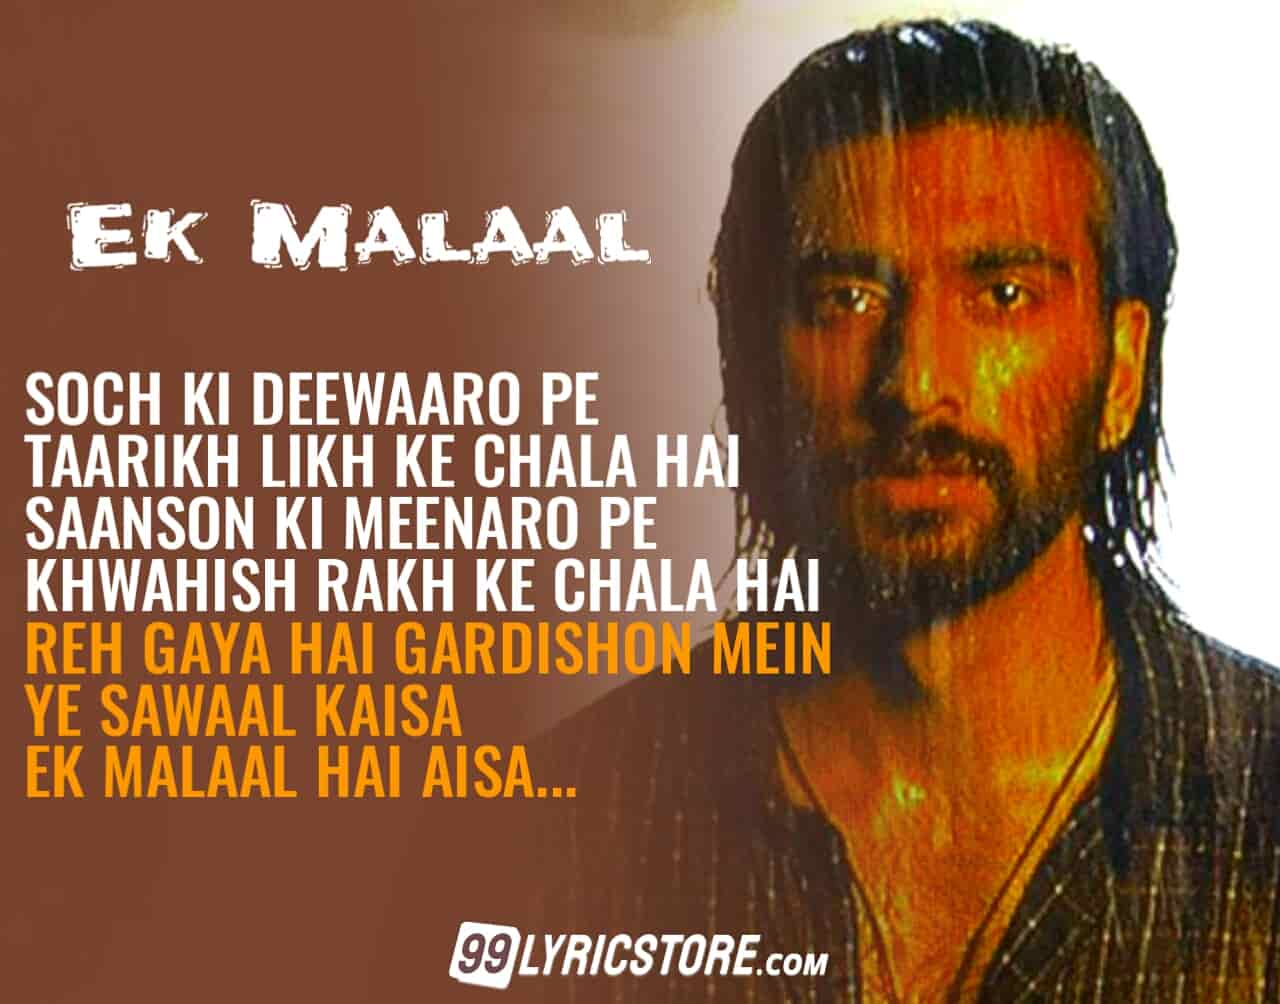 Ek Malaal Lyrics from movie Malaal sung by Shaila Hada